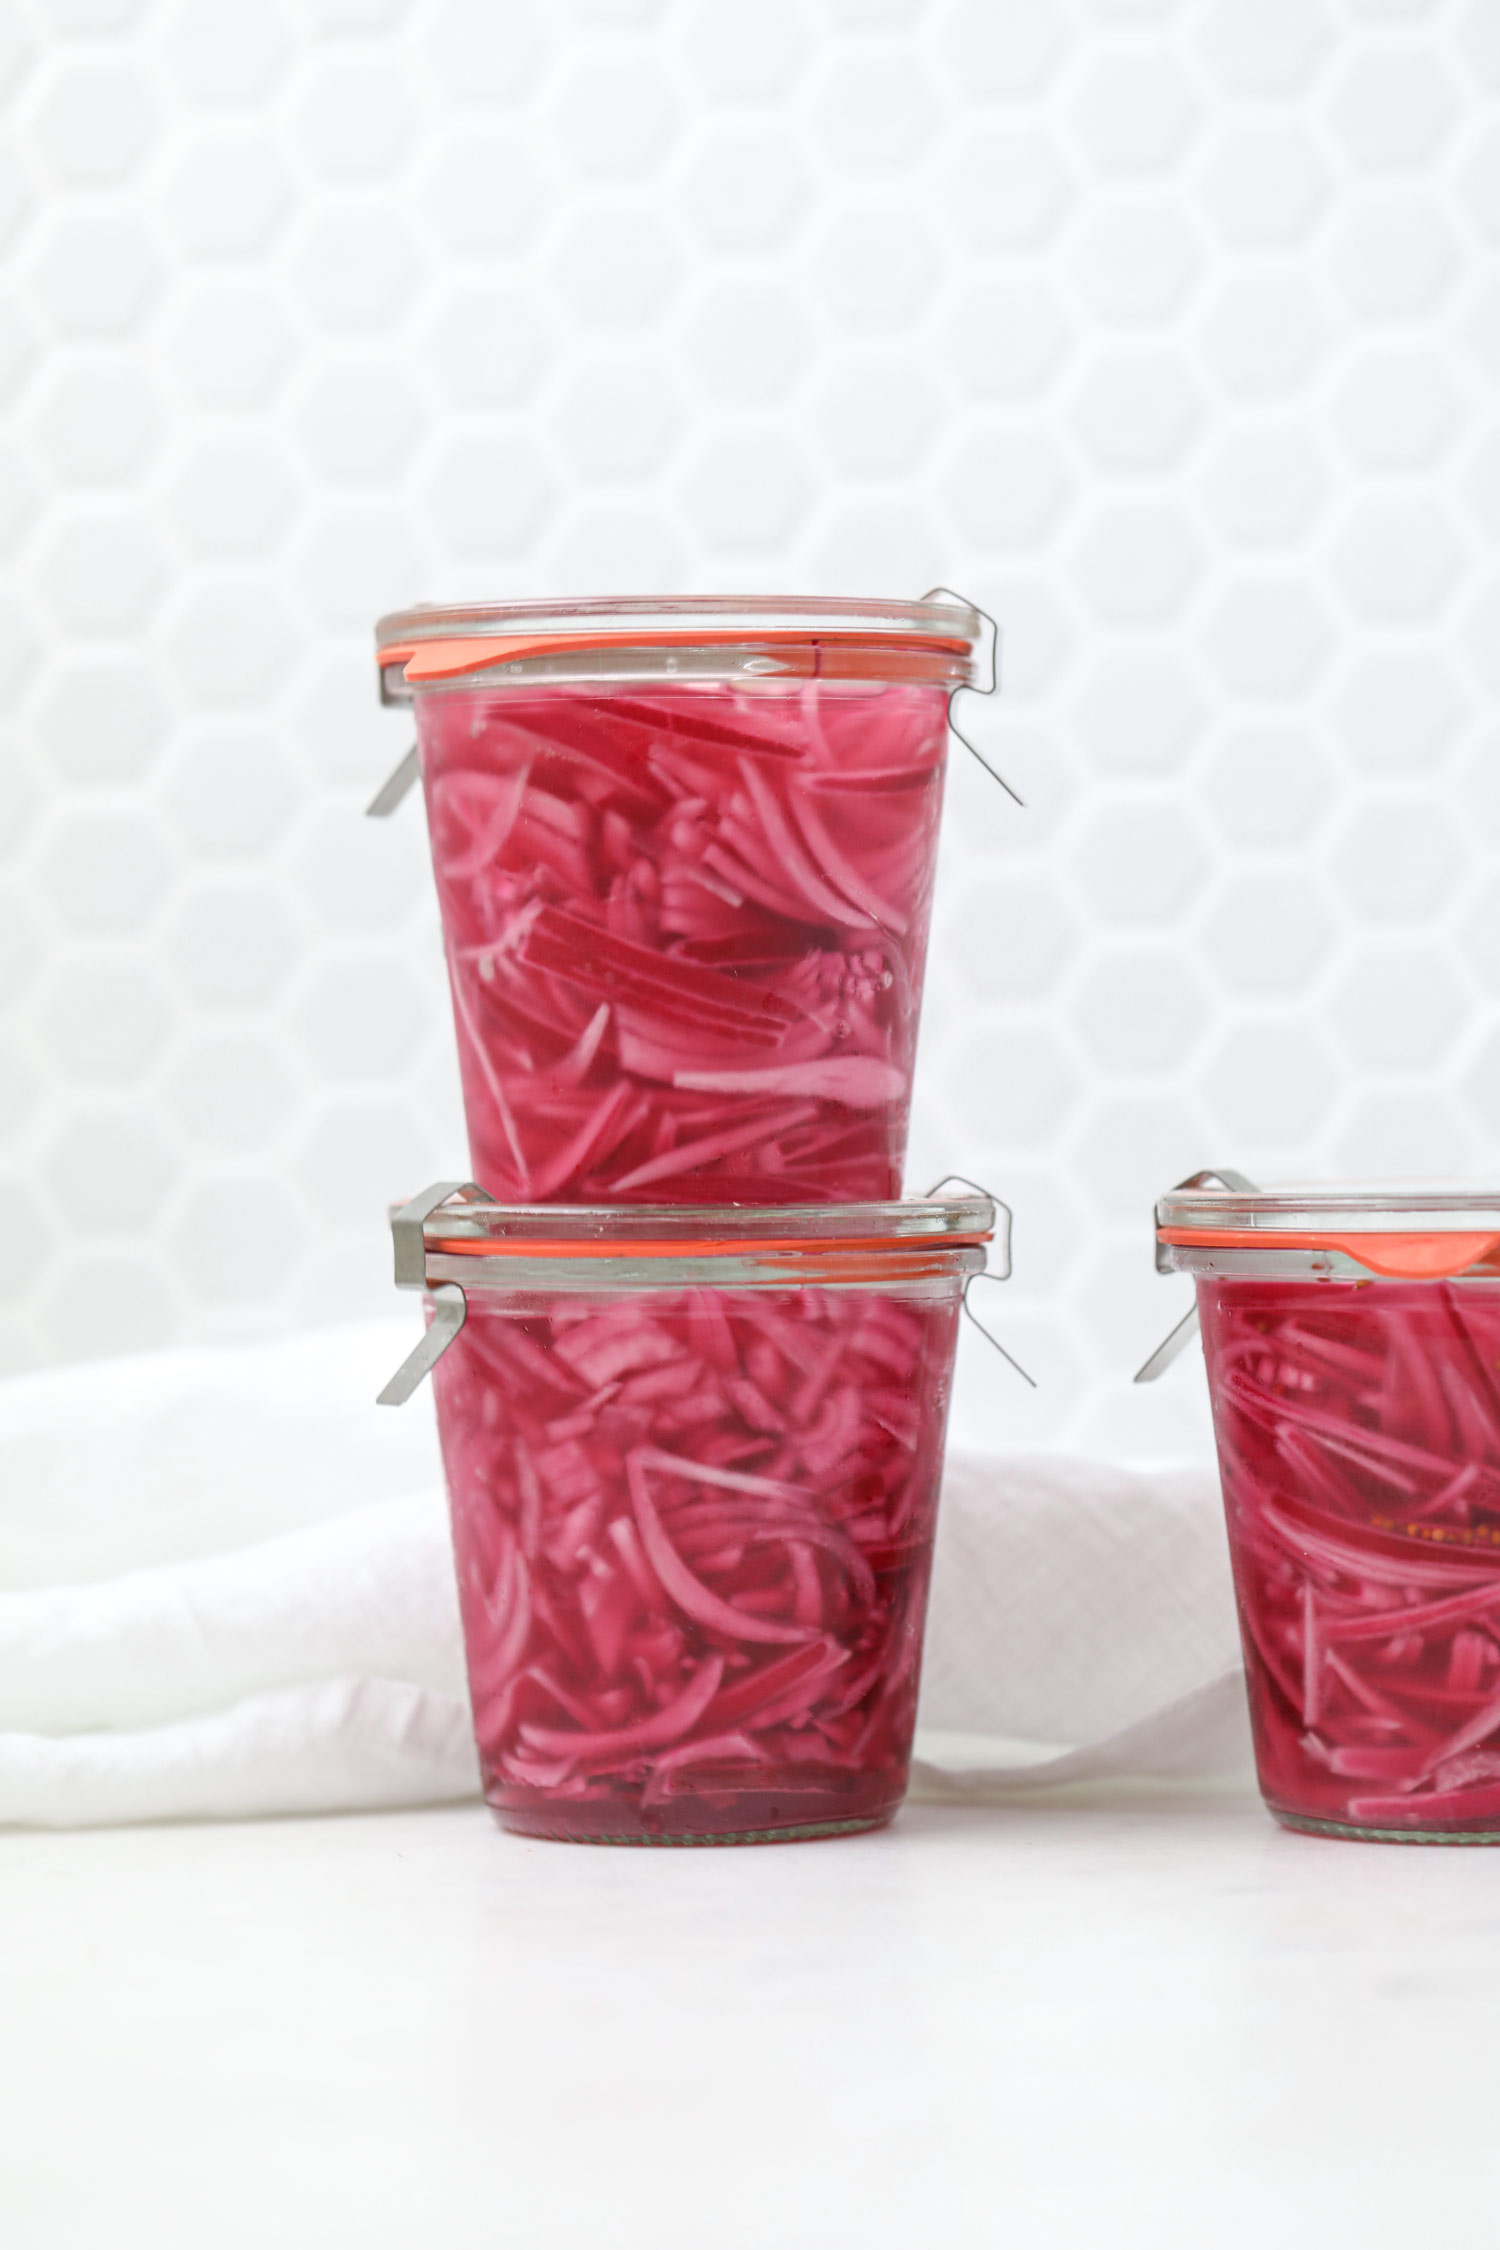 Quick Pickled onions by Bakd&Raw, Karolin Baitinger